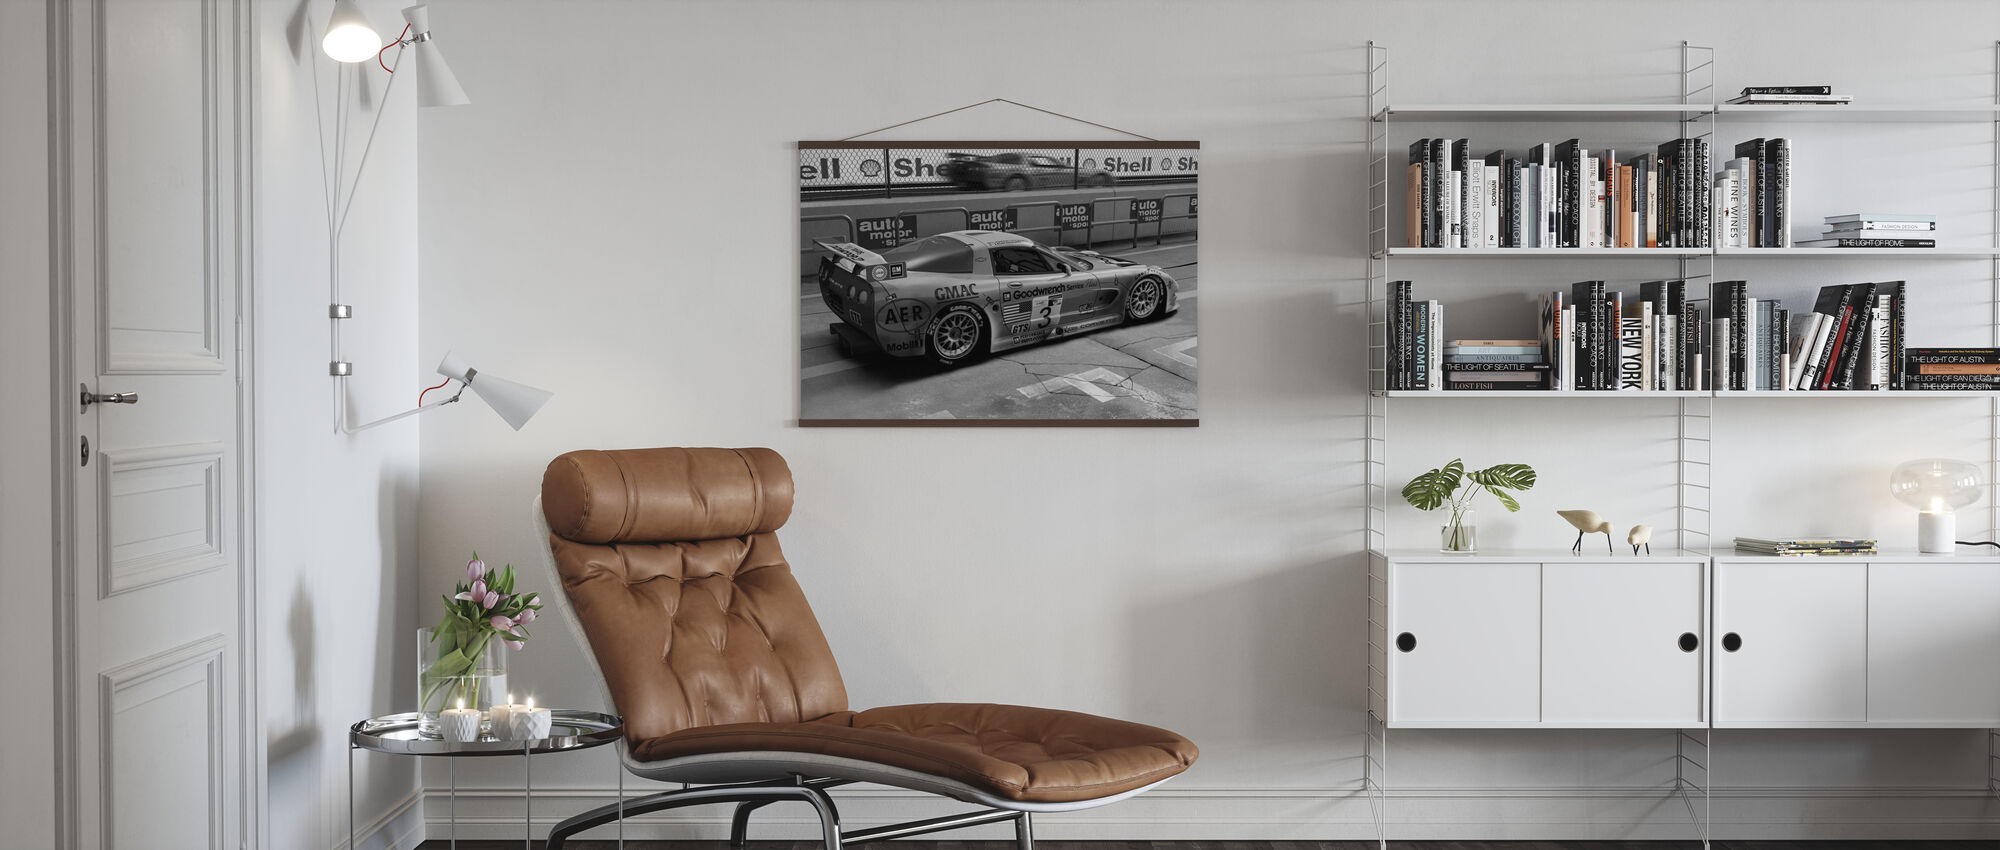 Car In Pit Lane BW - Poster - Living Room